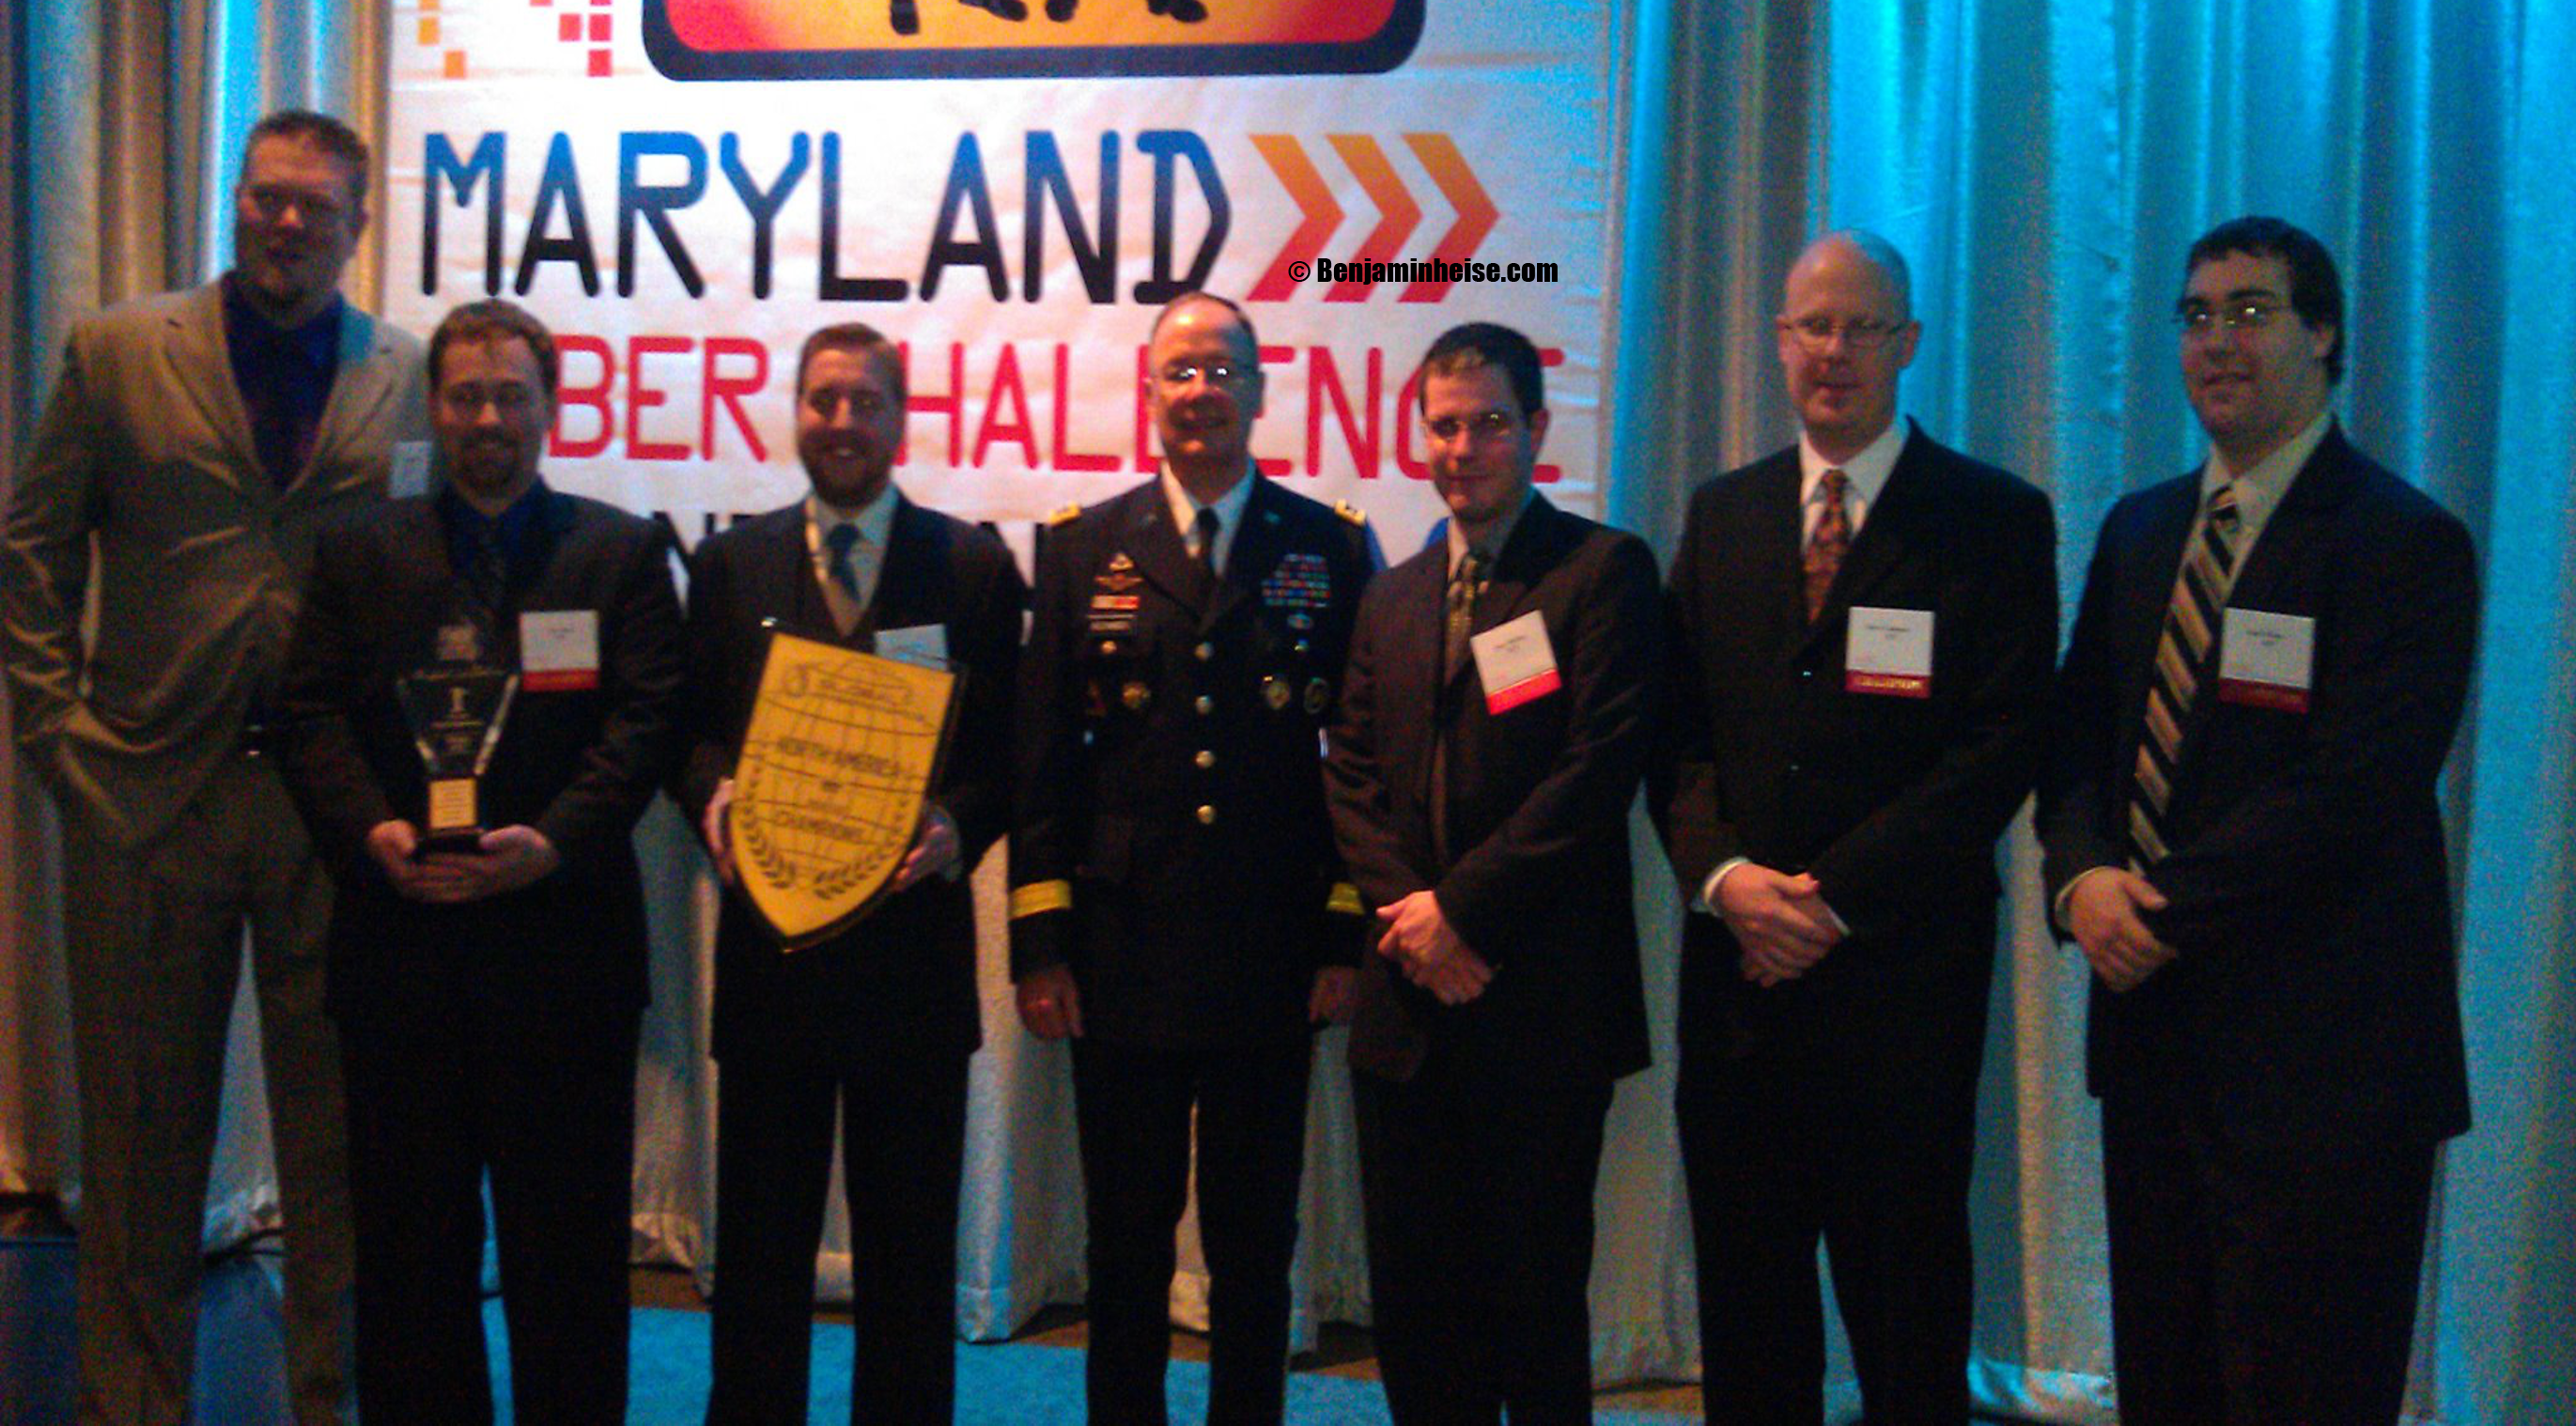 TeamICF with then NSA director General Keith Alexander